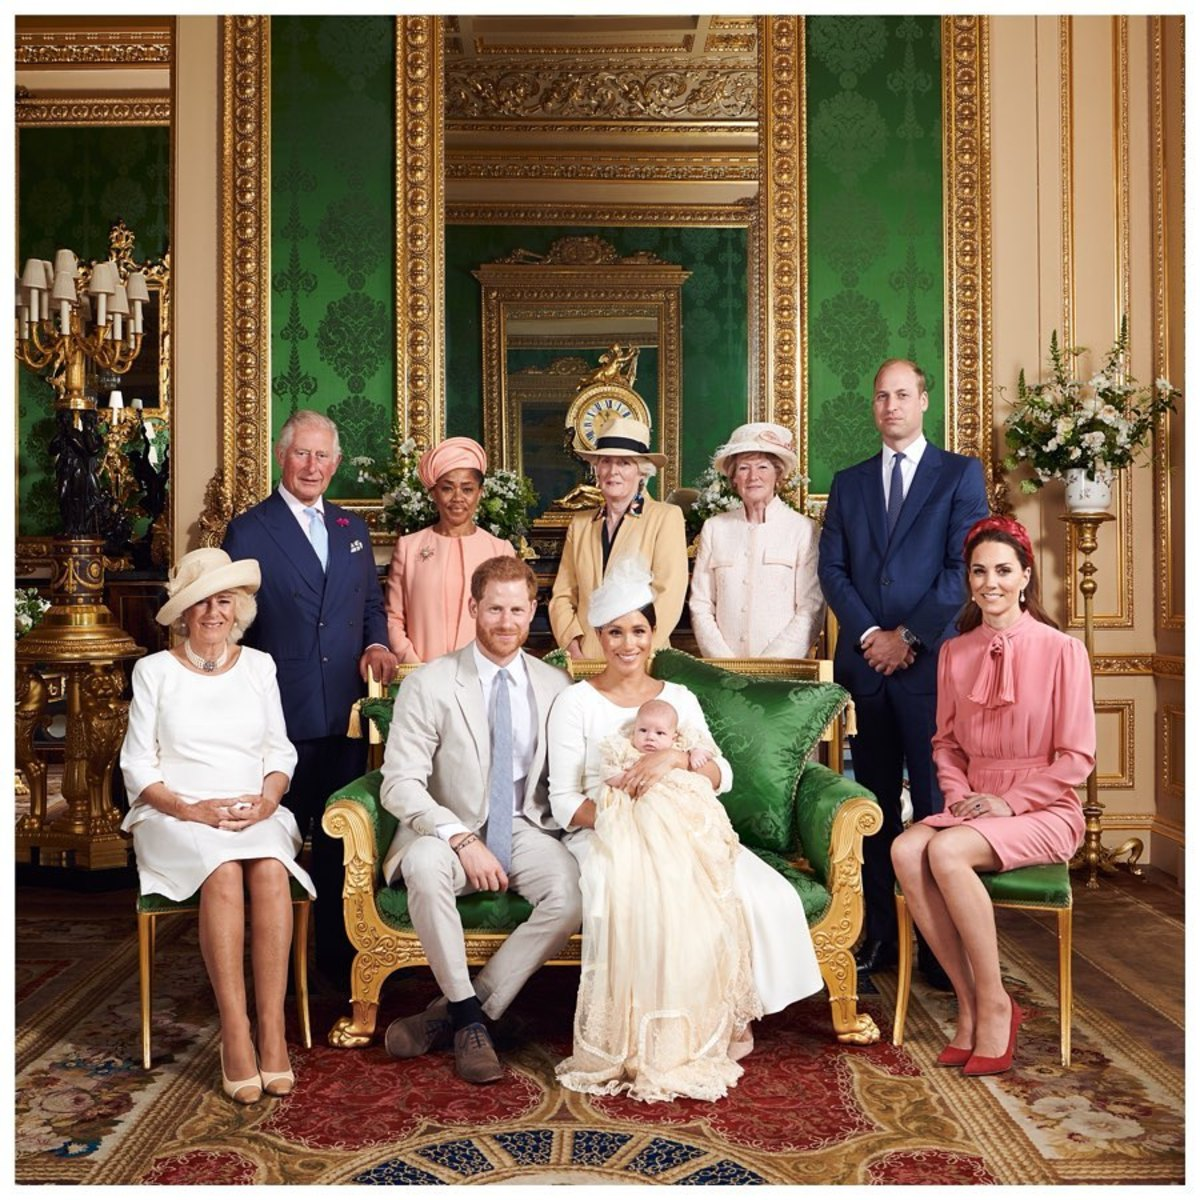 The royal family portrait for Archie's christening. Photo: Chris Allerton/Sussex Royal/AFP